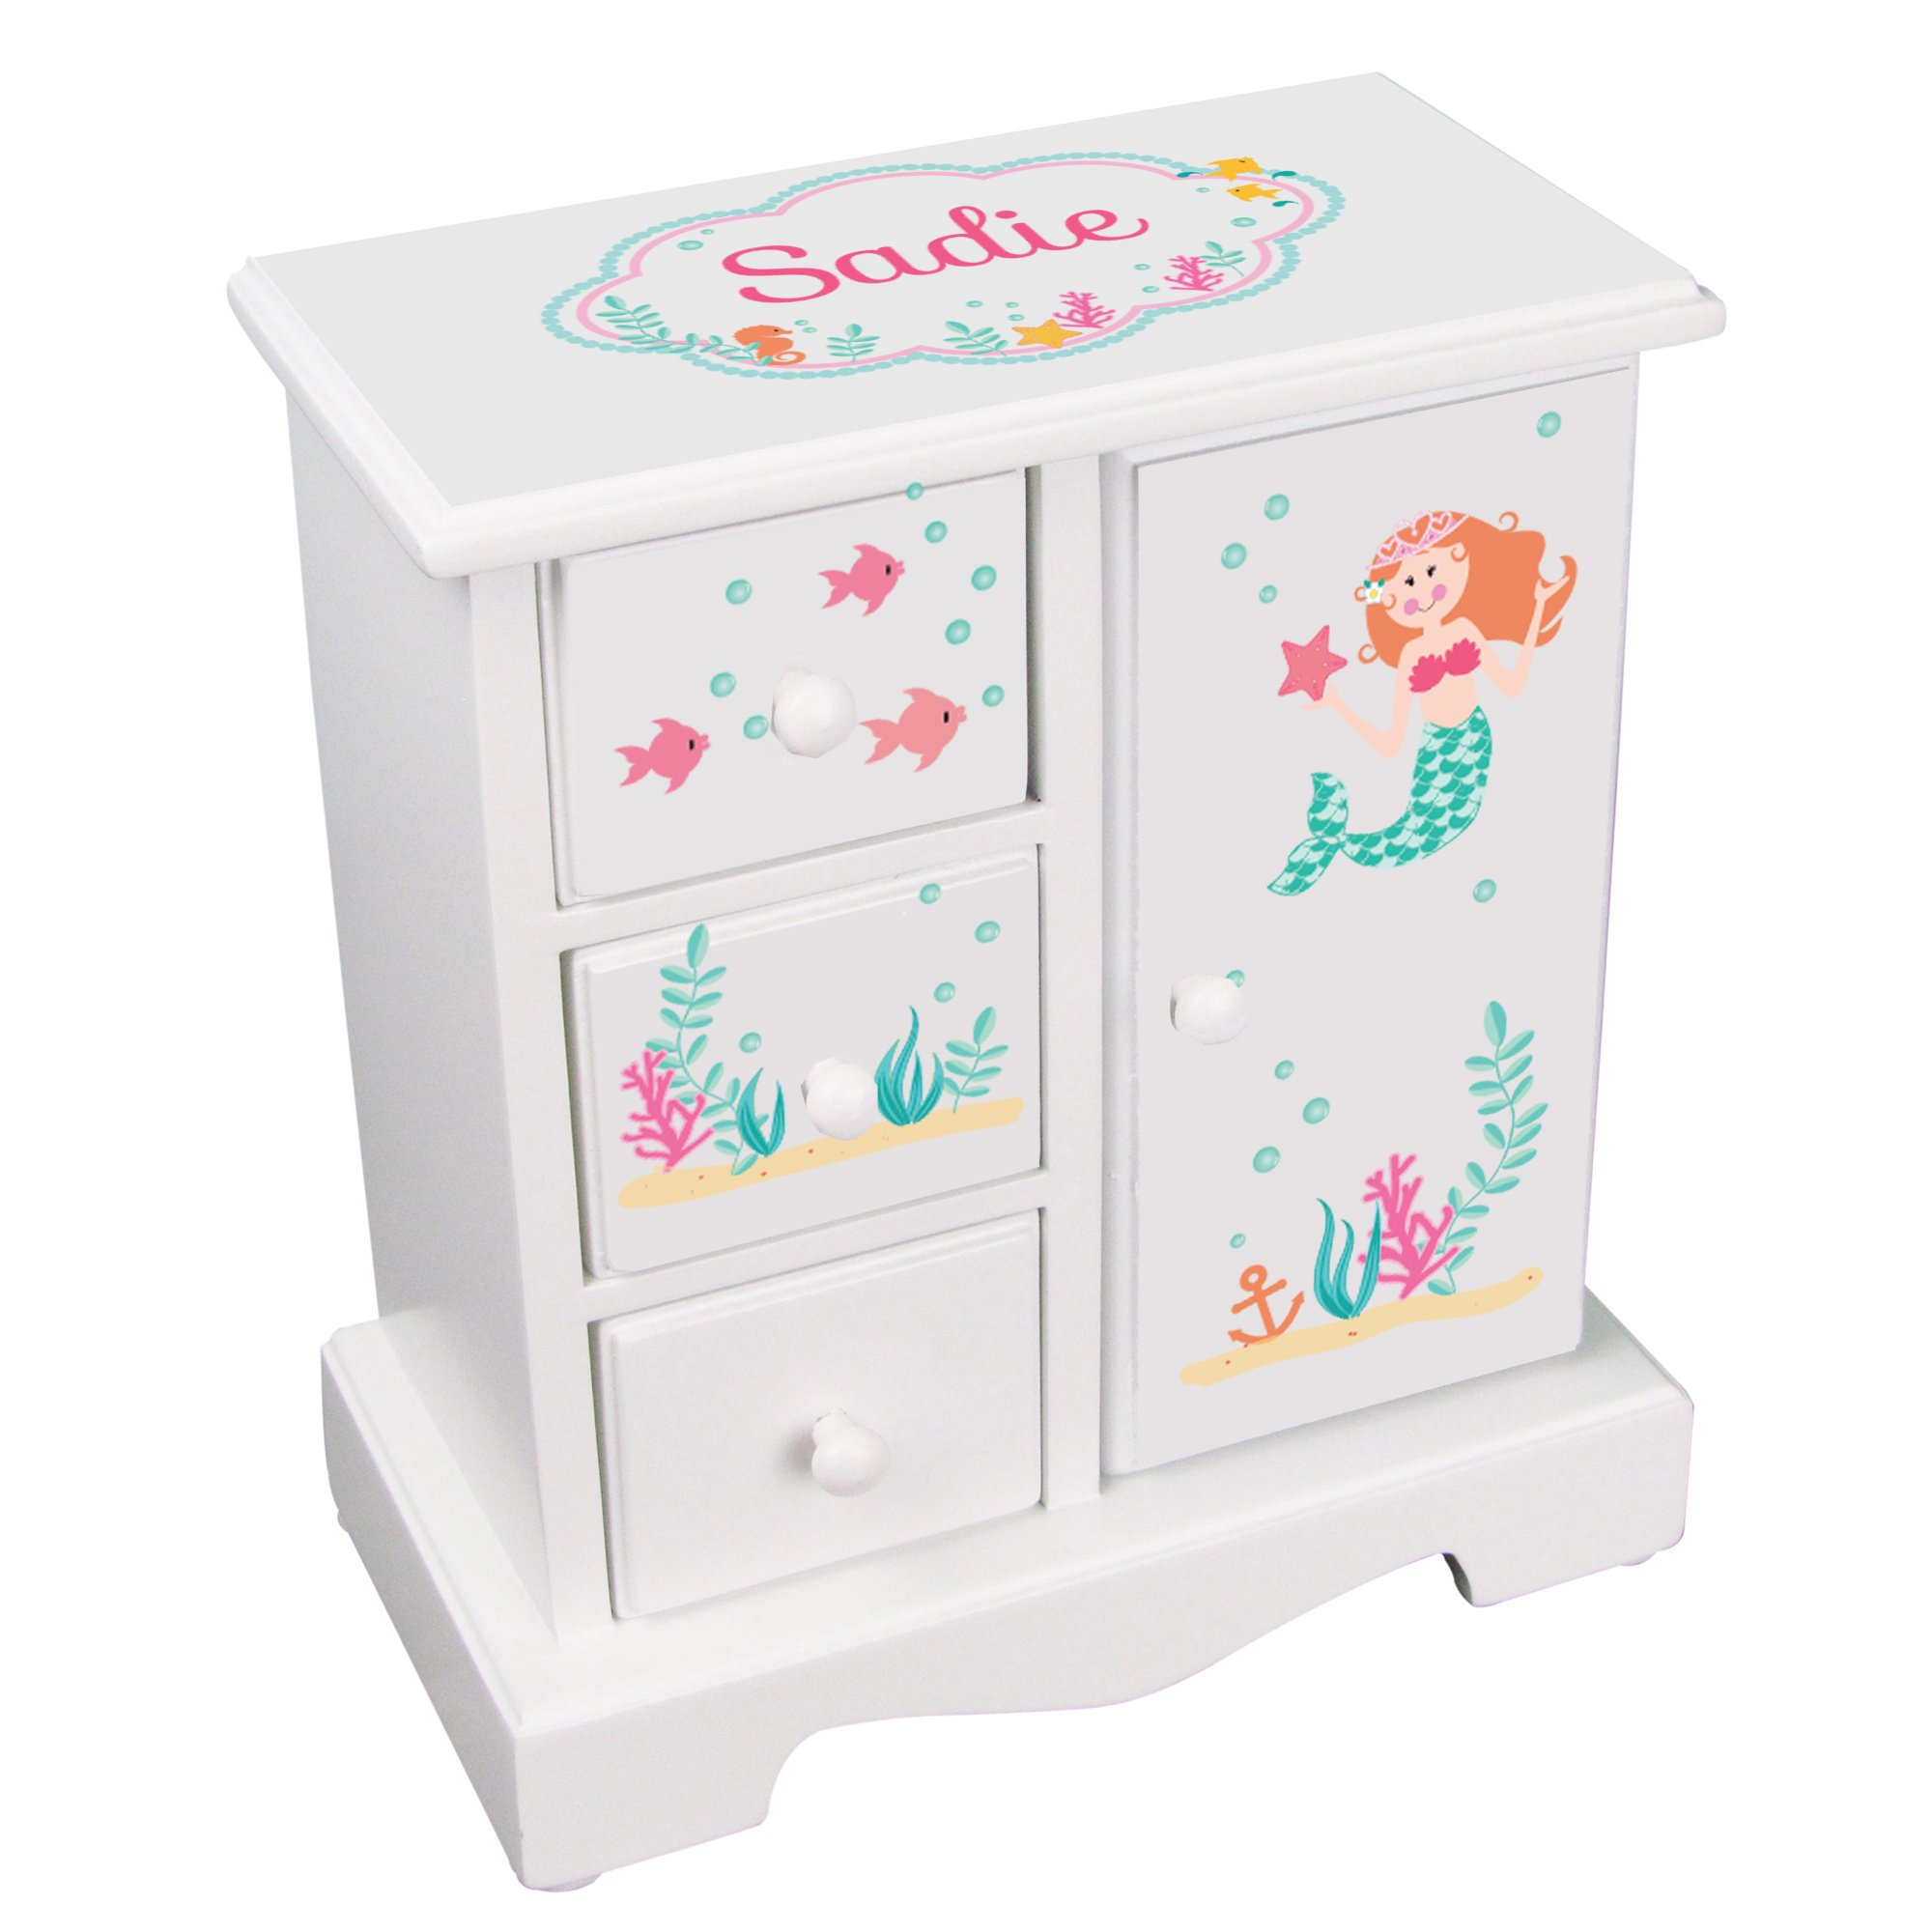 Personalized Girls Jewelry Armoire with Mermaid Red Hair Design